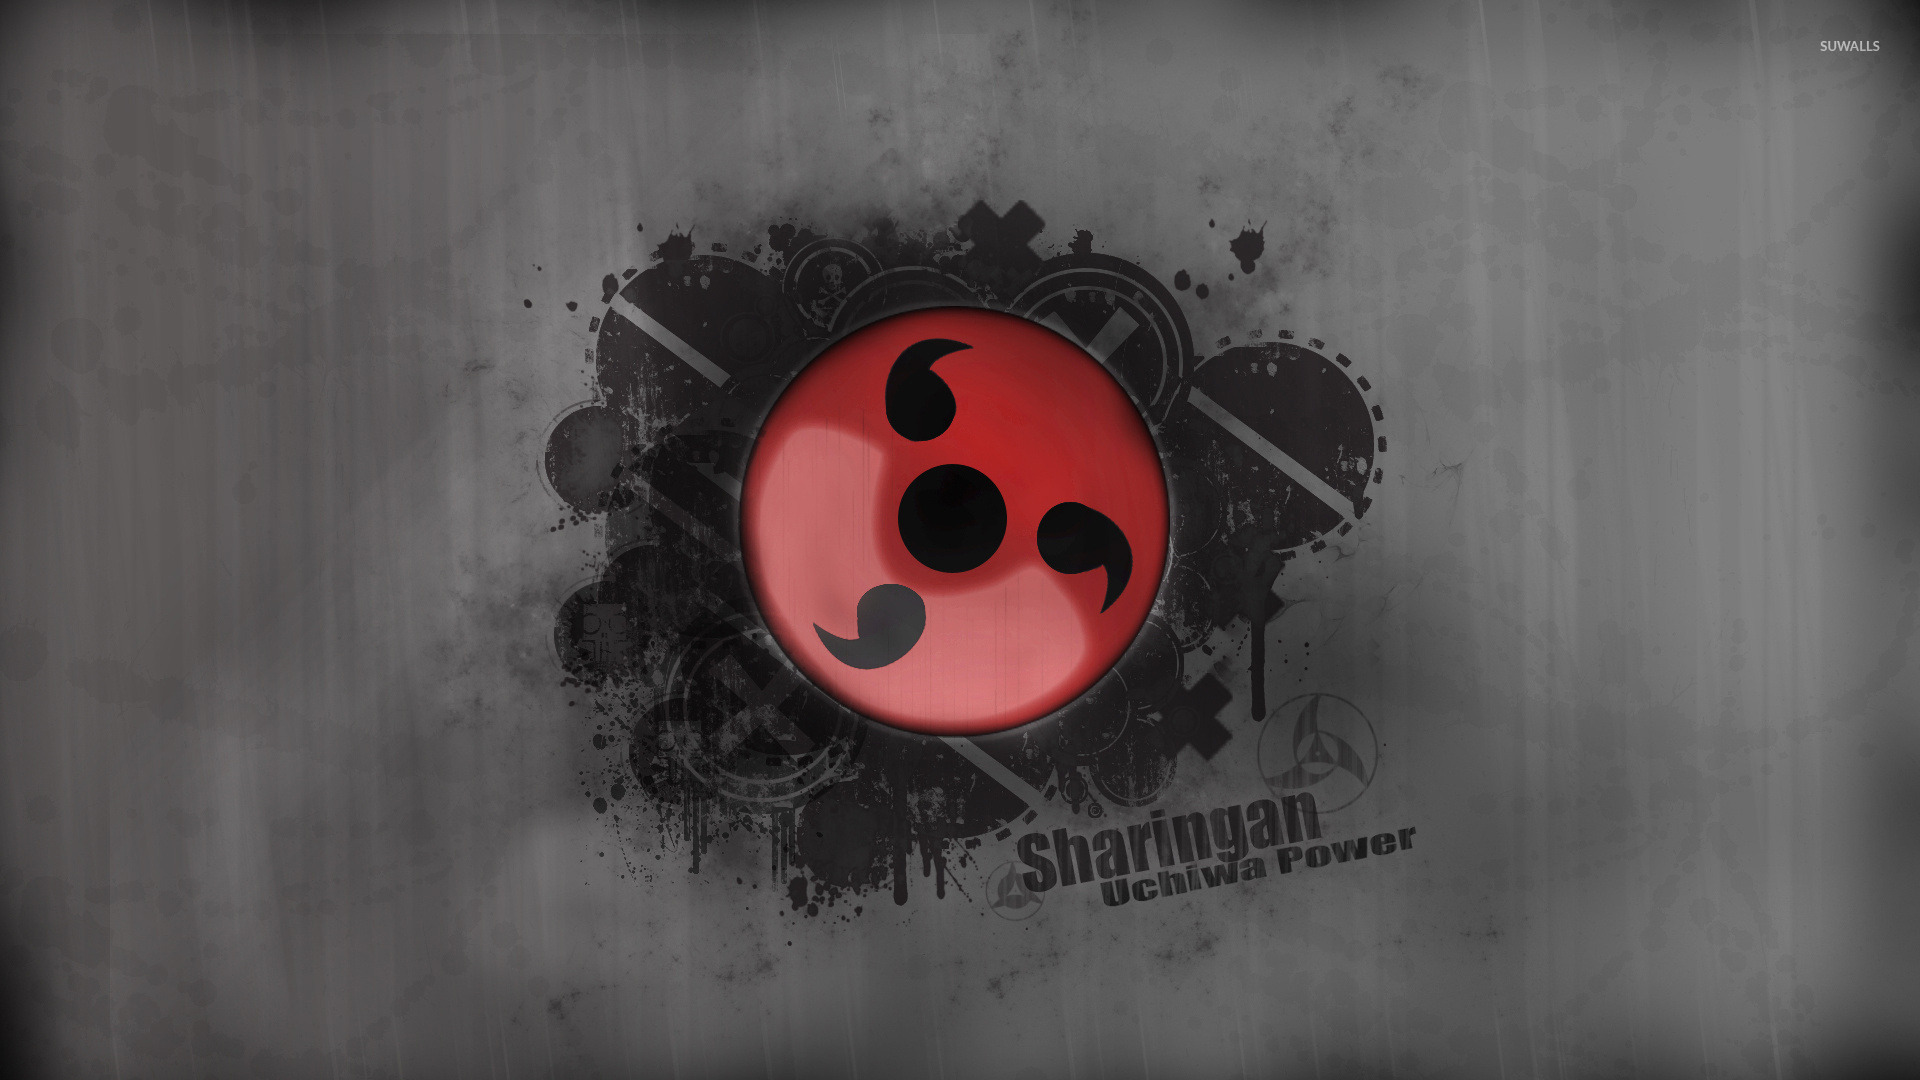 Download 960 Koleksi Wallpaper Naruto Sharingan Gratis